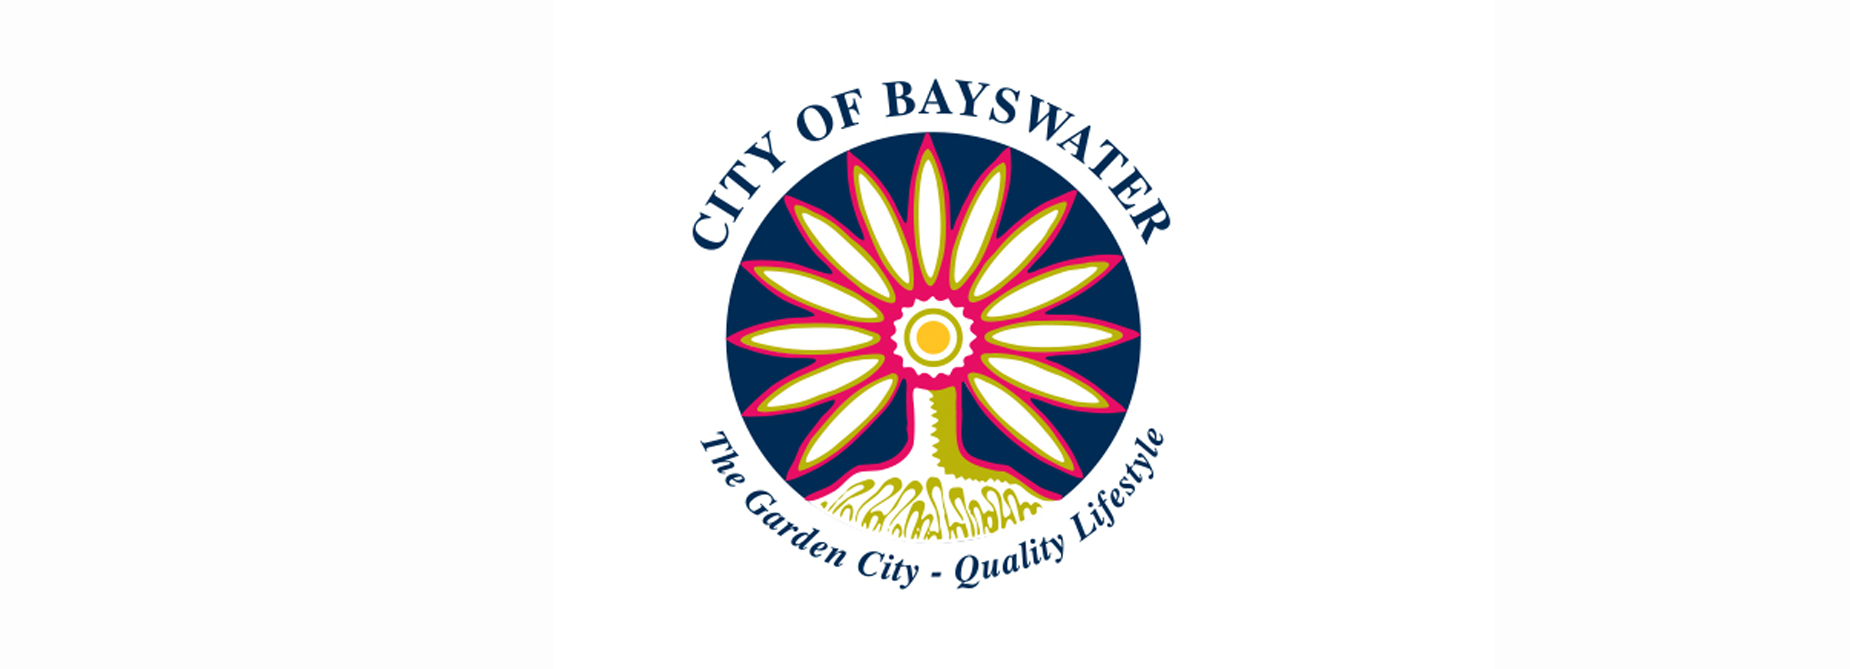 The City of Bayswater Logo